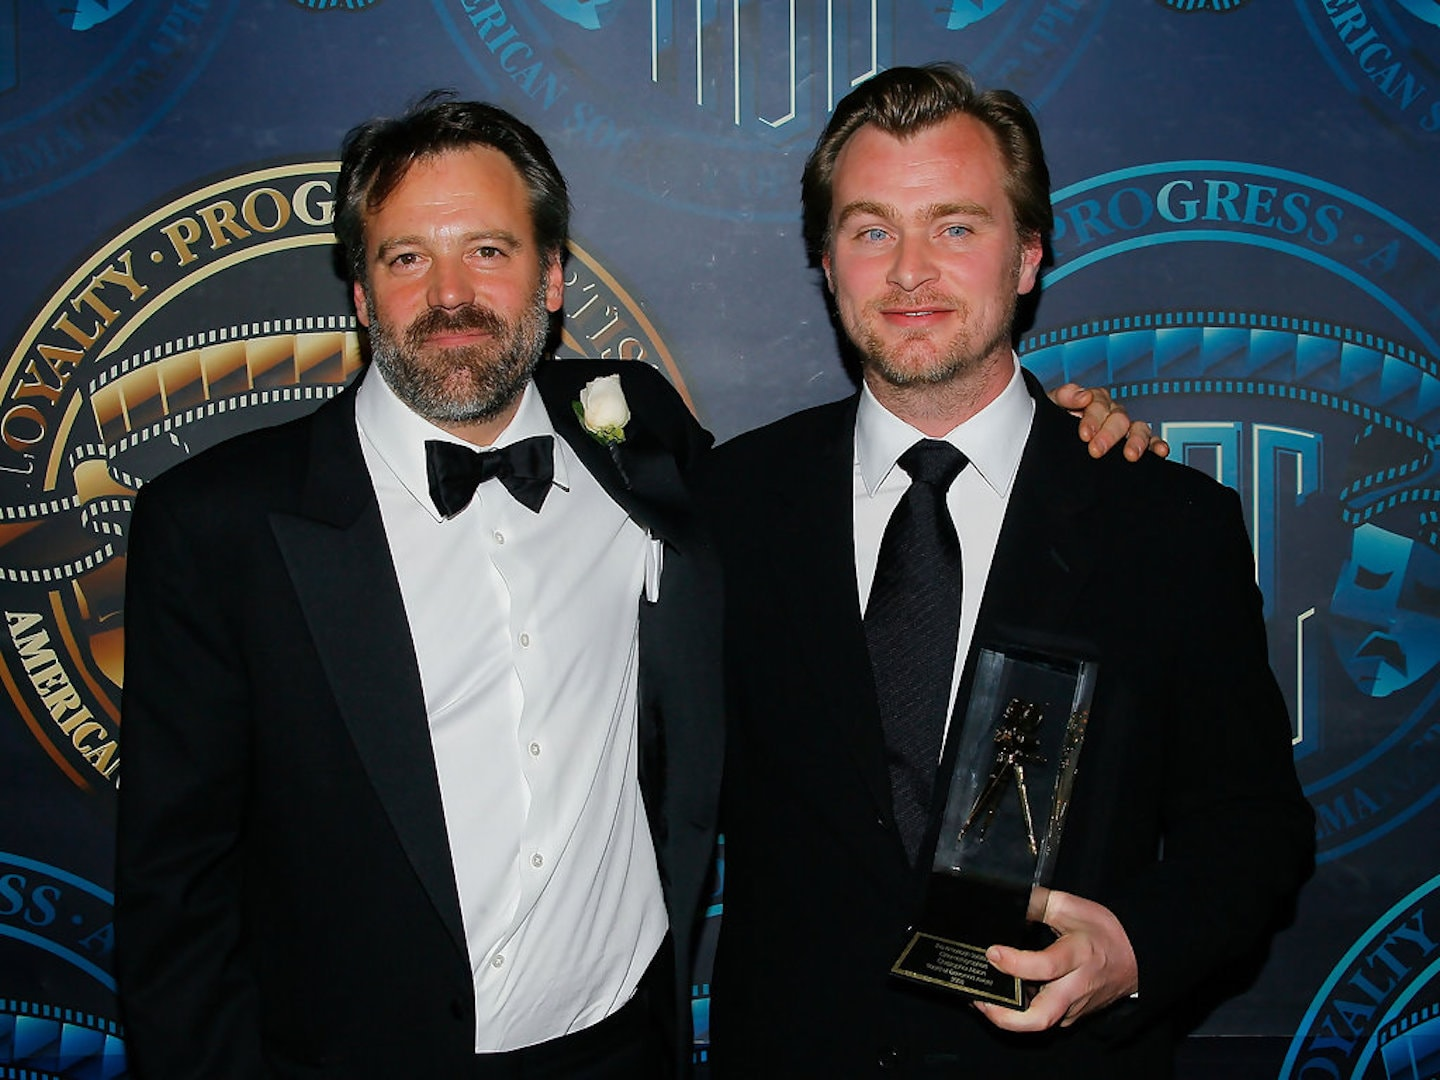 Working Cinematographer - Christopher Nolan and his Cinematographer - ProductionBeast